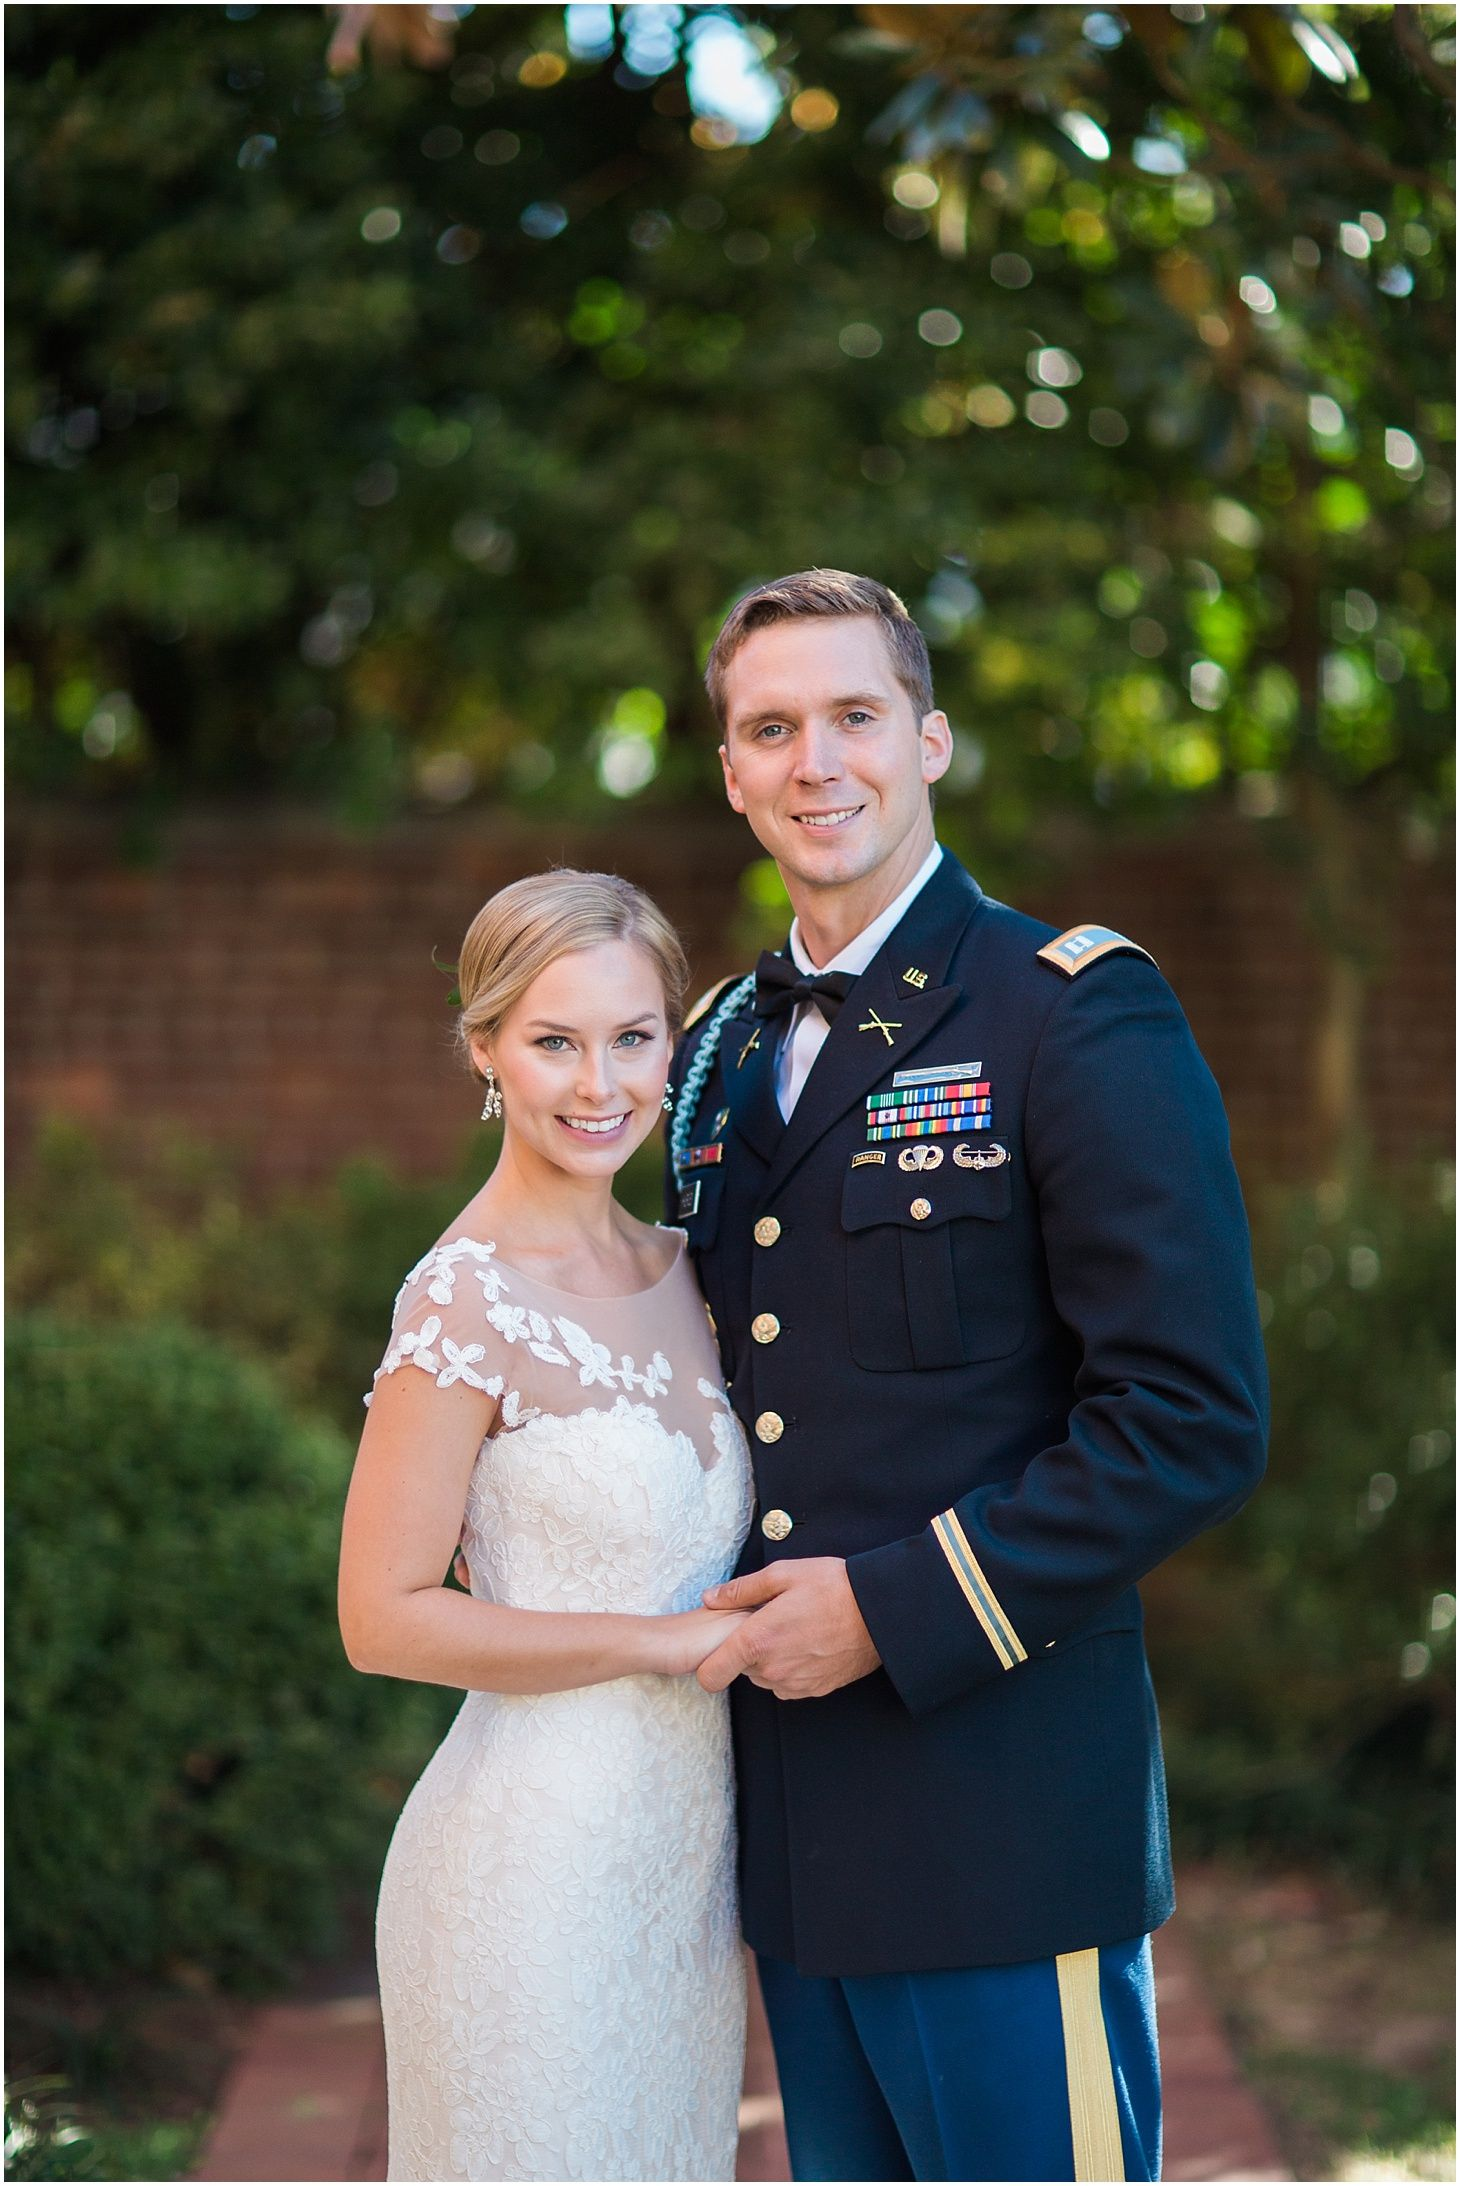 Southern Black Tie Wedding At St Regis Dc In Dusty Blue And Ivory Sarah Bradshaw Photography Weddi Dress Blues Army Blue Wedding Dresses Black Tie Wedding [ 2186 x 1460 Pixel ]